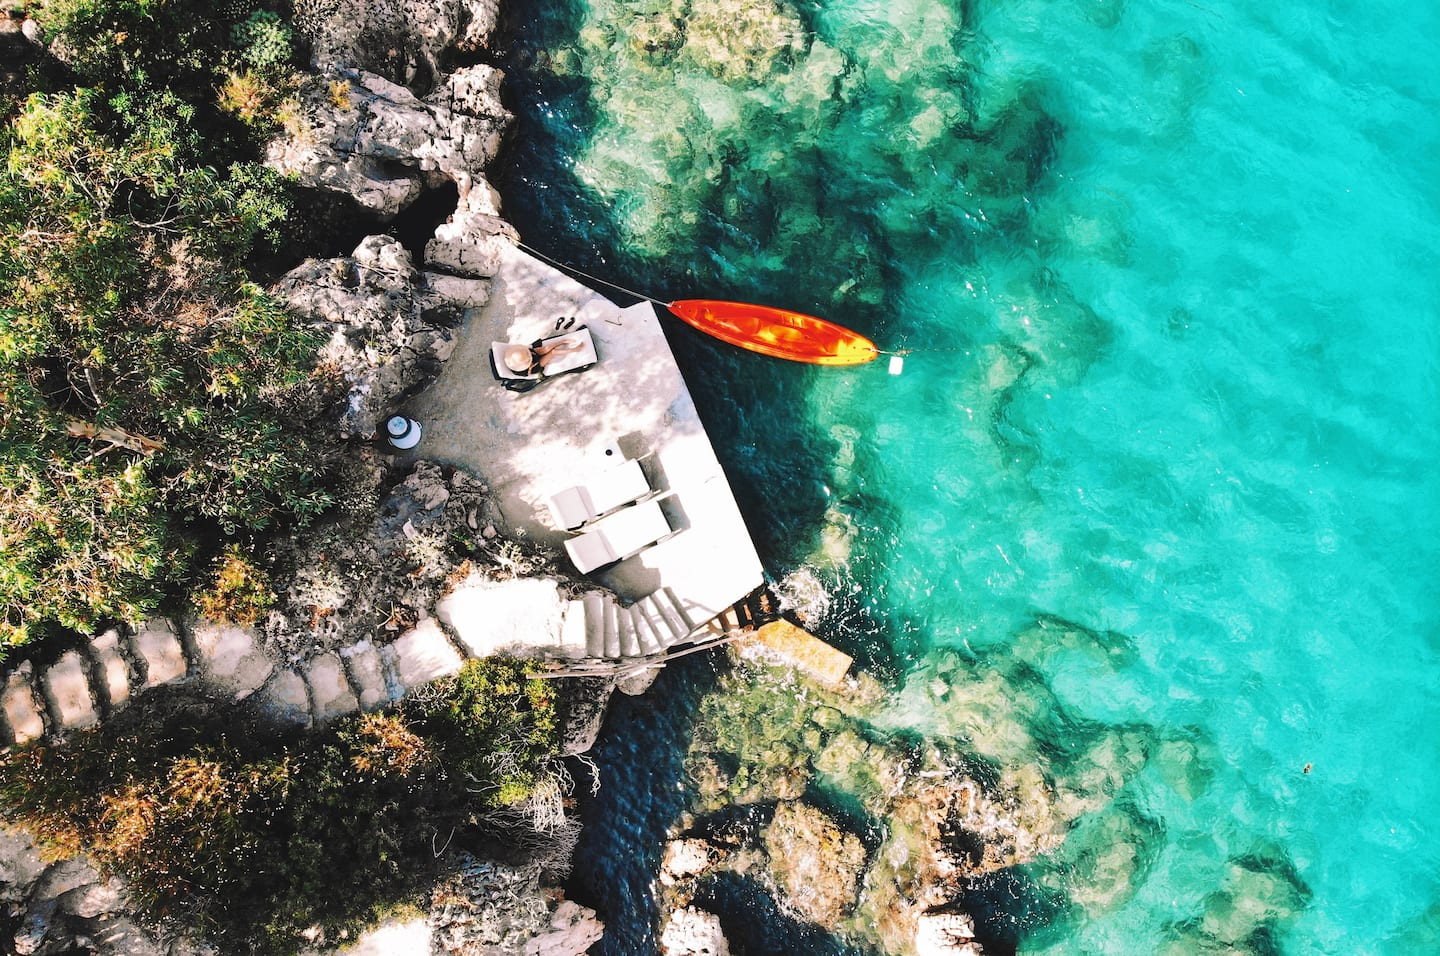 AirBnB in Turkey, Kaş: Repurposed ambar, and turquoise views!